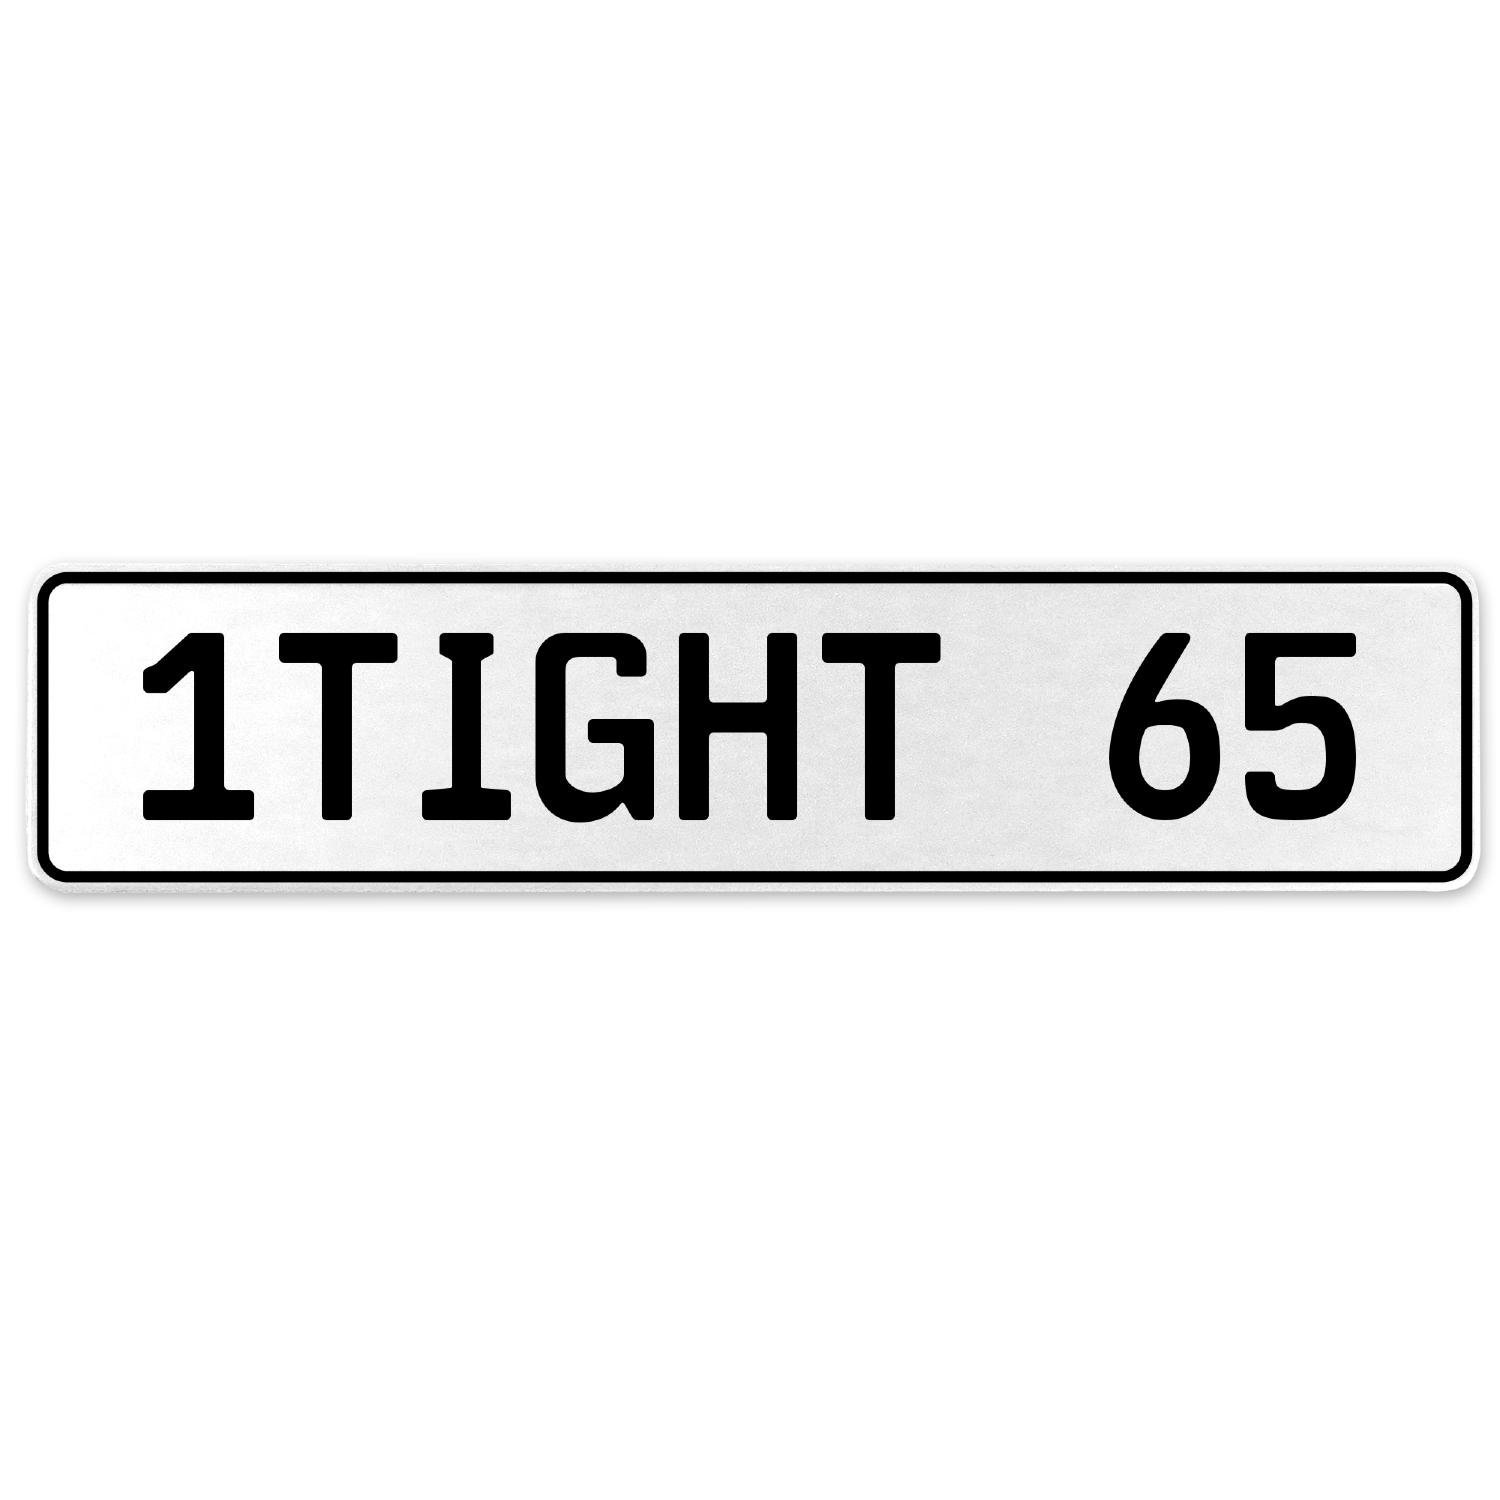 Vintage Parts 554860 1TIGHT 65 White Stamped Aluminum European License Plate